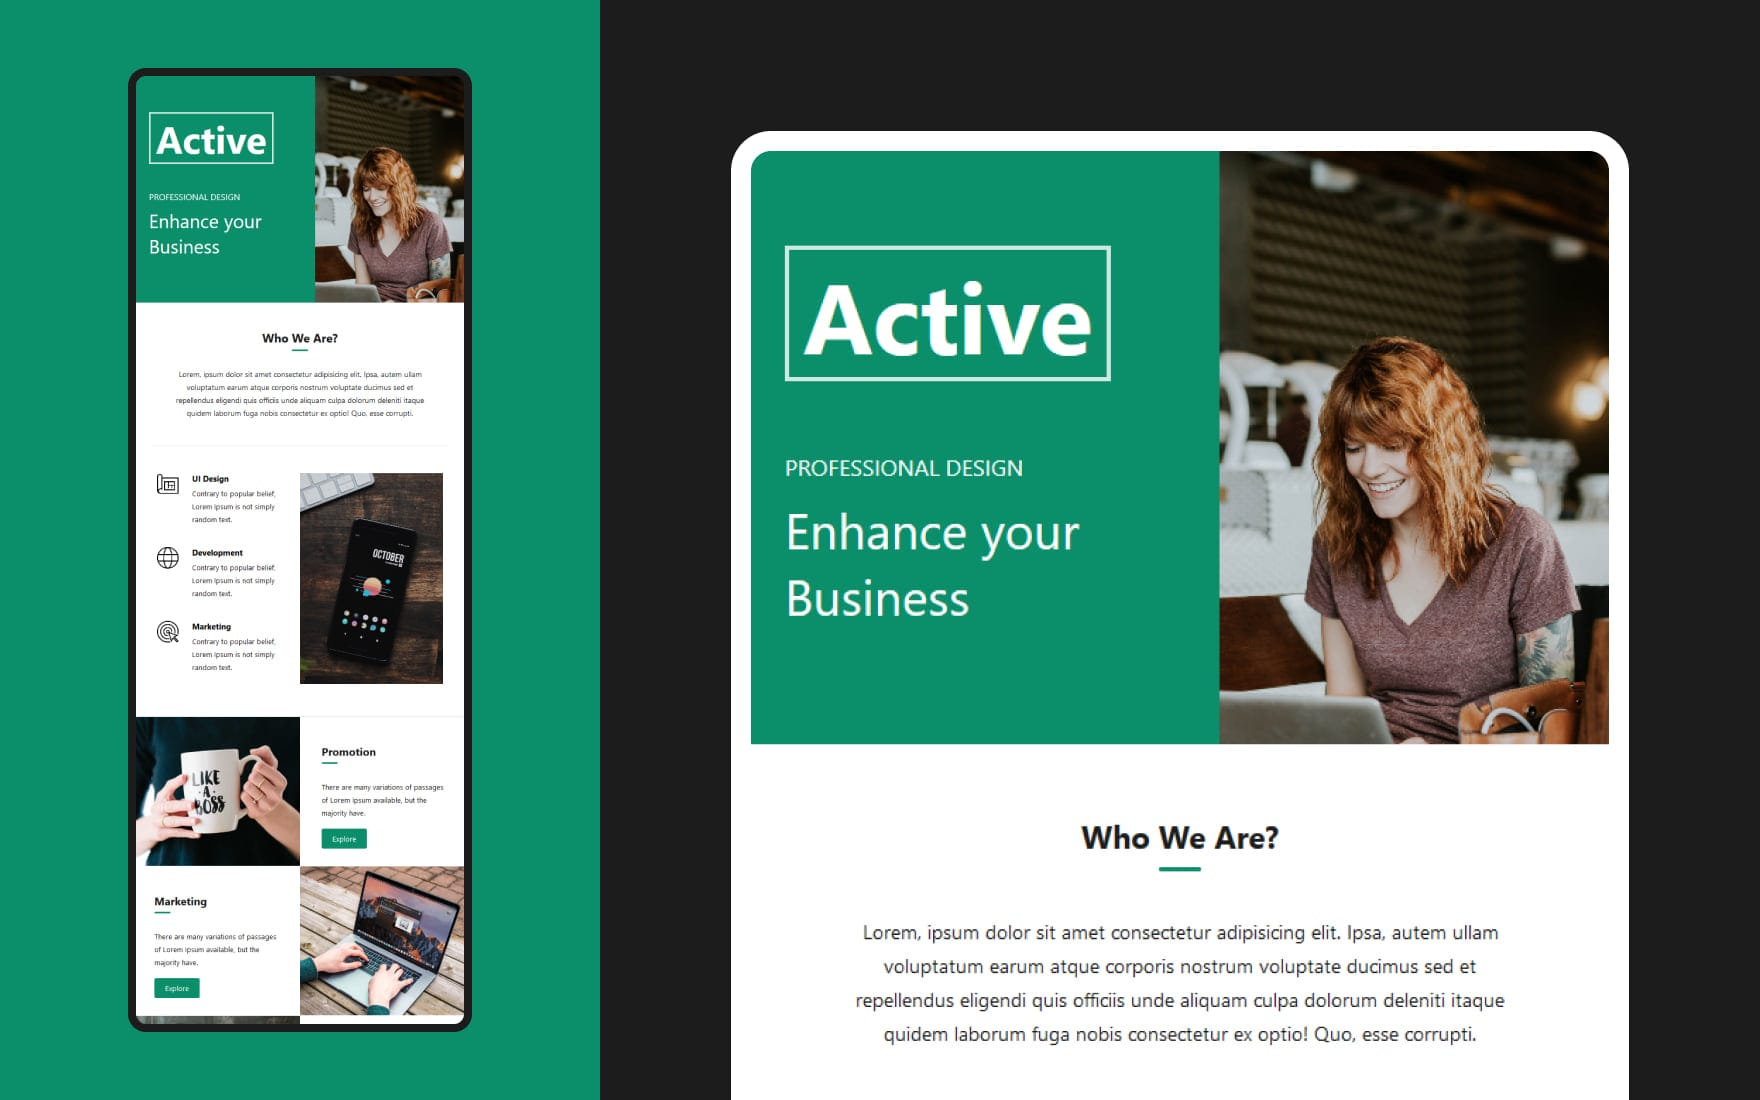 Active Featured Image